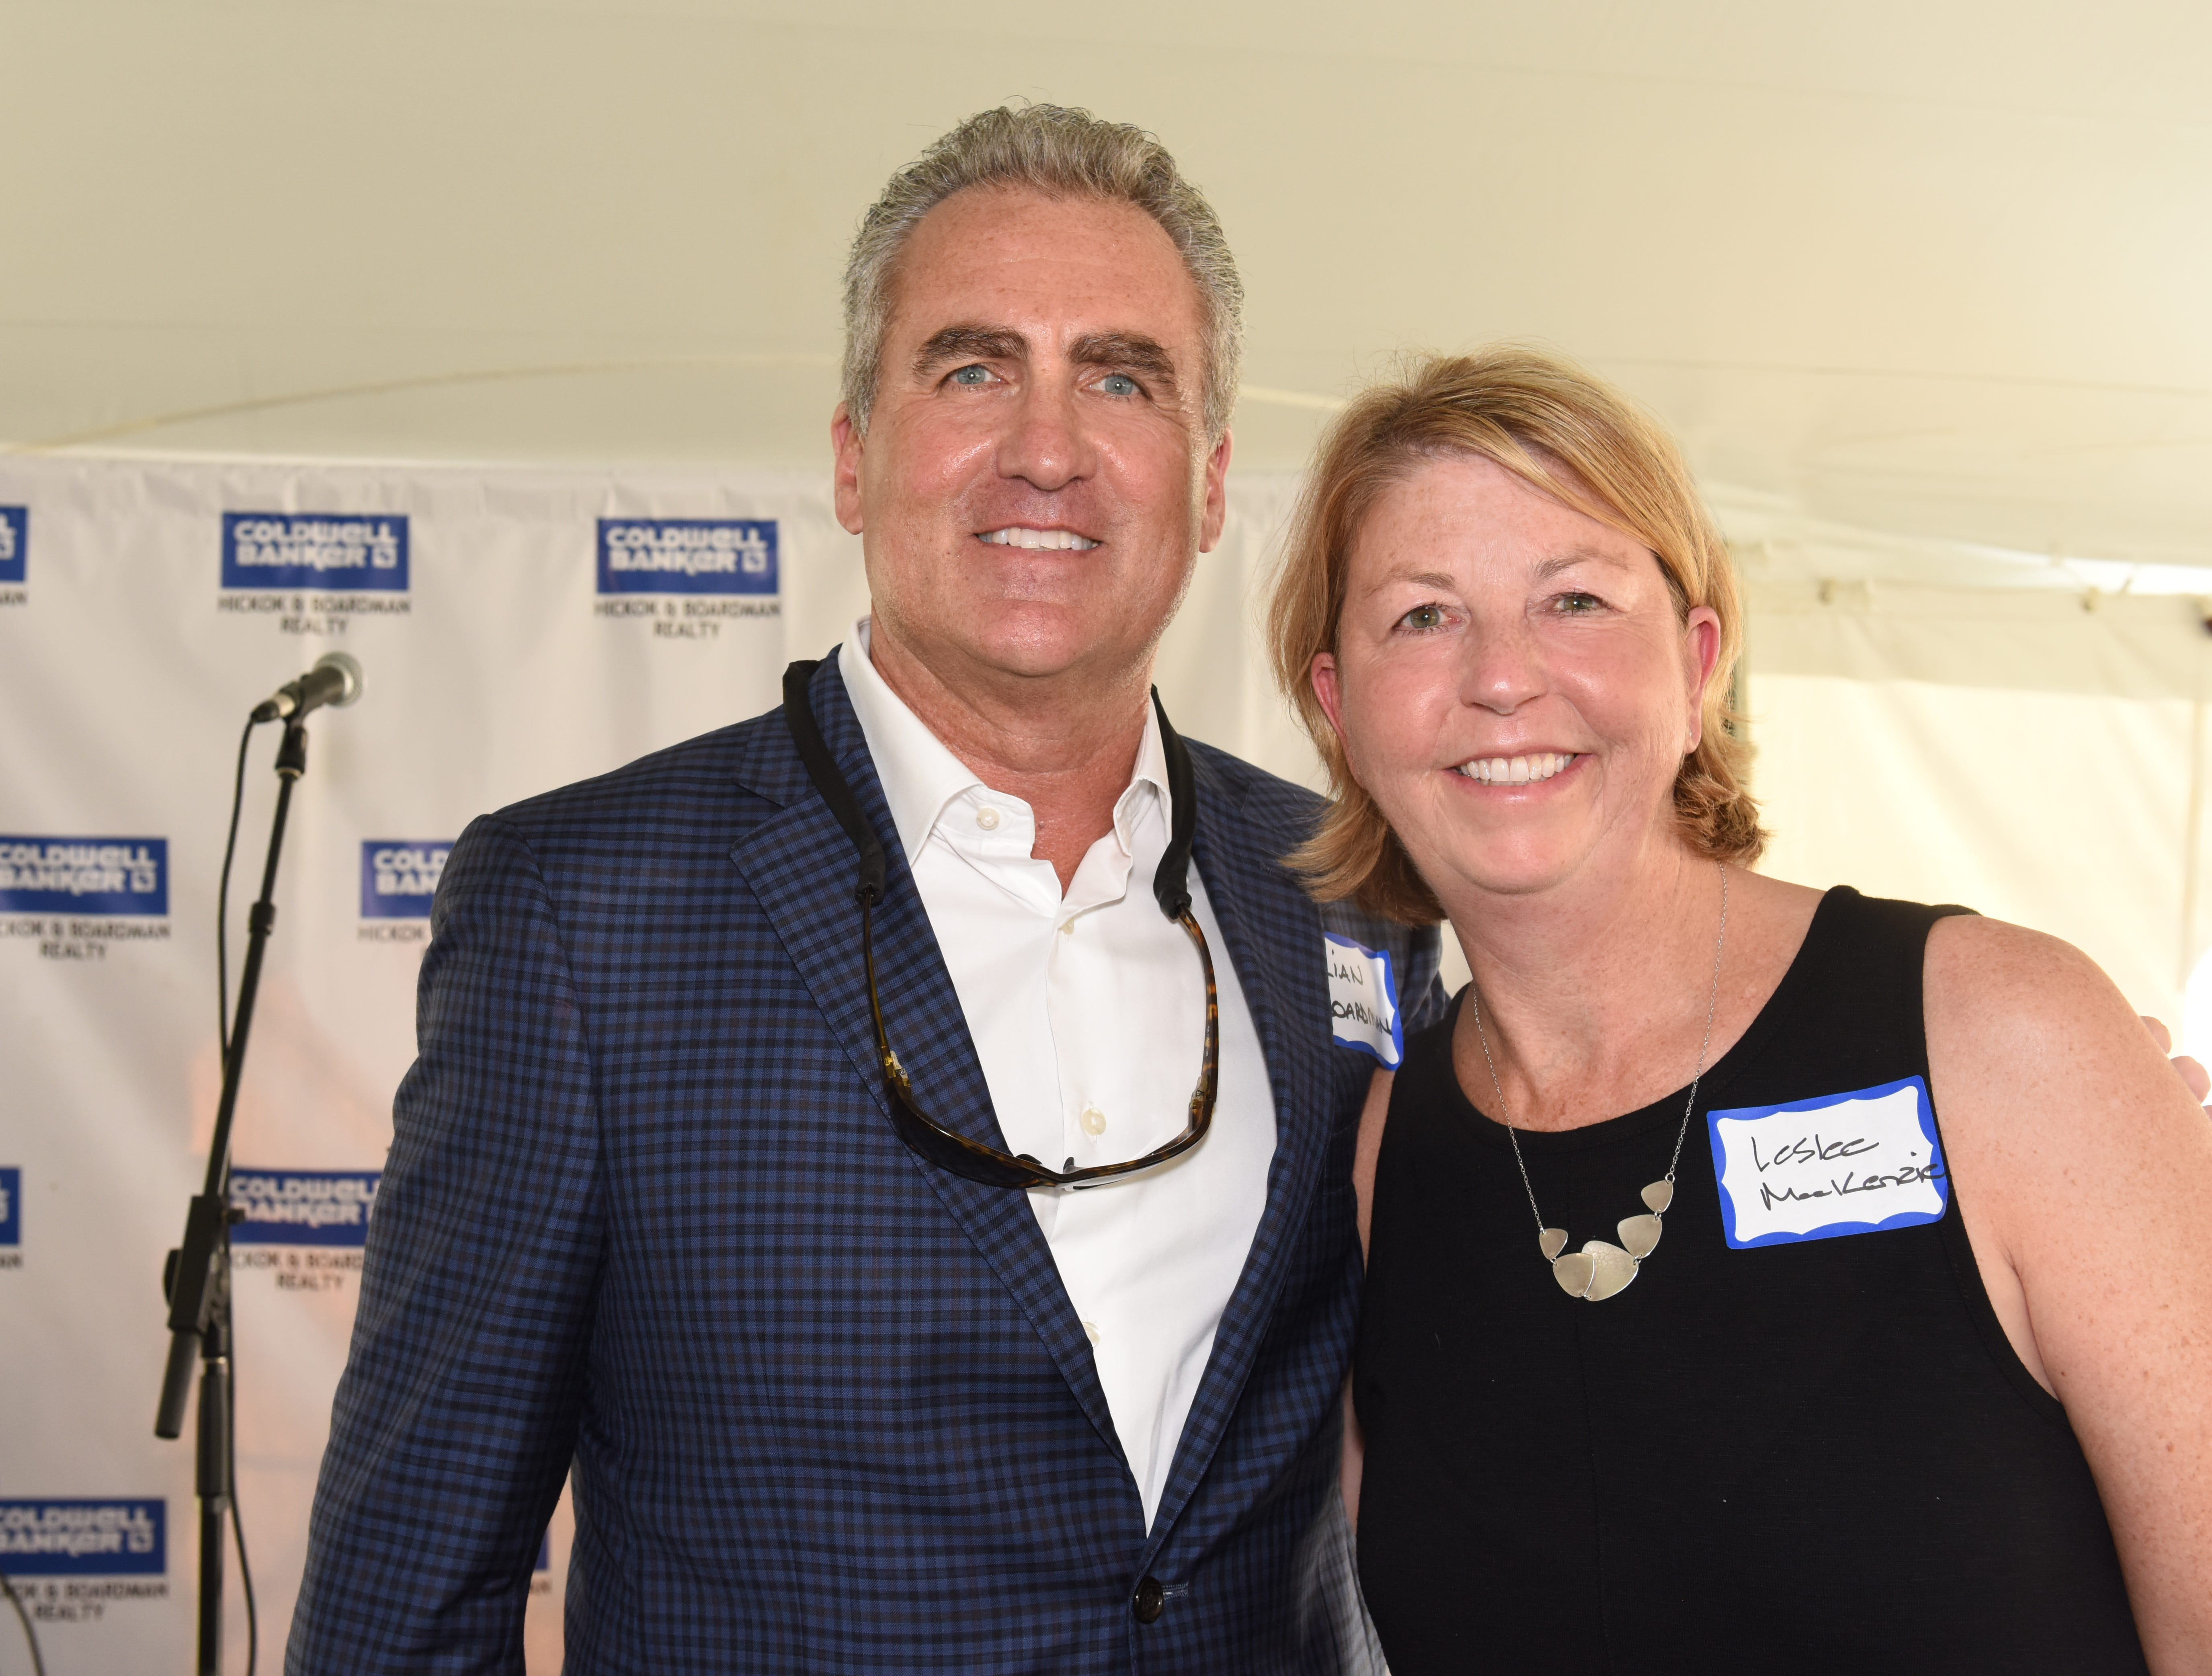 Brian Boardman and Leslee MacKenzie, Partners/Owners in Coldwell Banker Hickok & Boardman Realty host the Coldwell Banker Hickok & Boardman 60th Anniversary on September 13, 2018, with current and past agents and community leaders in Burlington, VT.